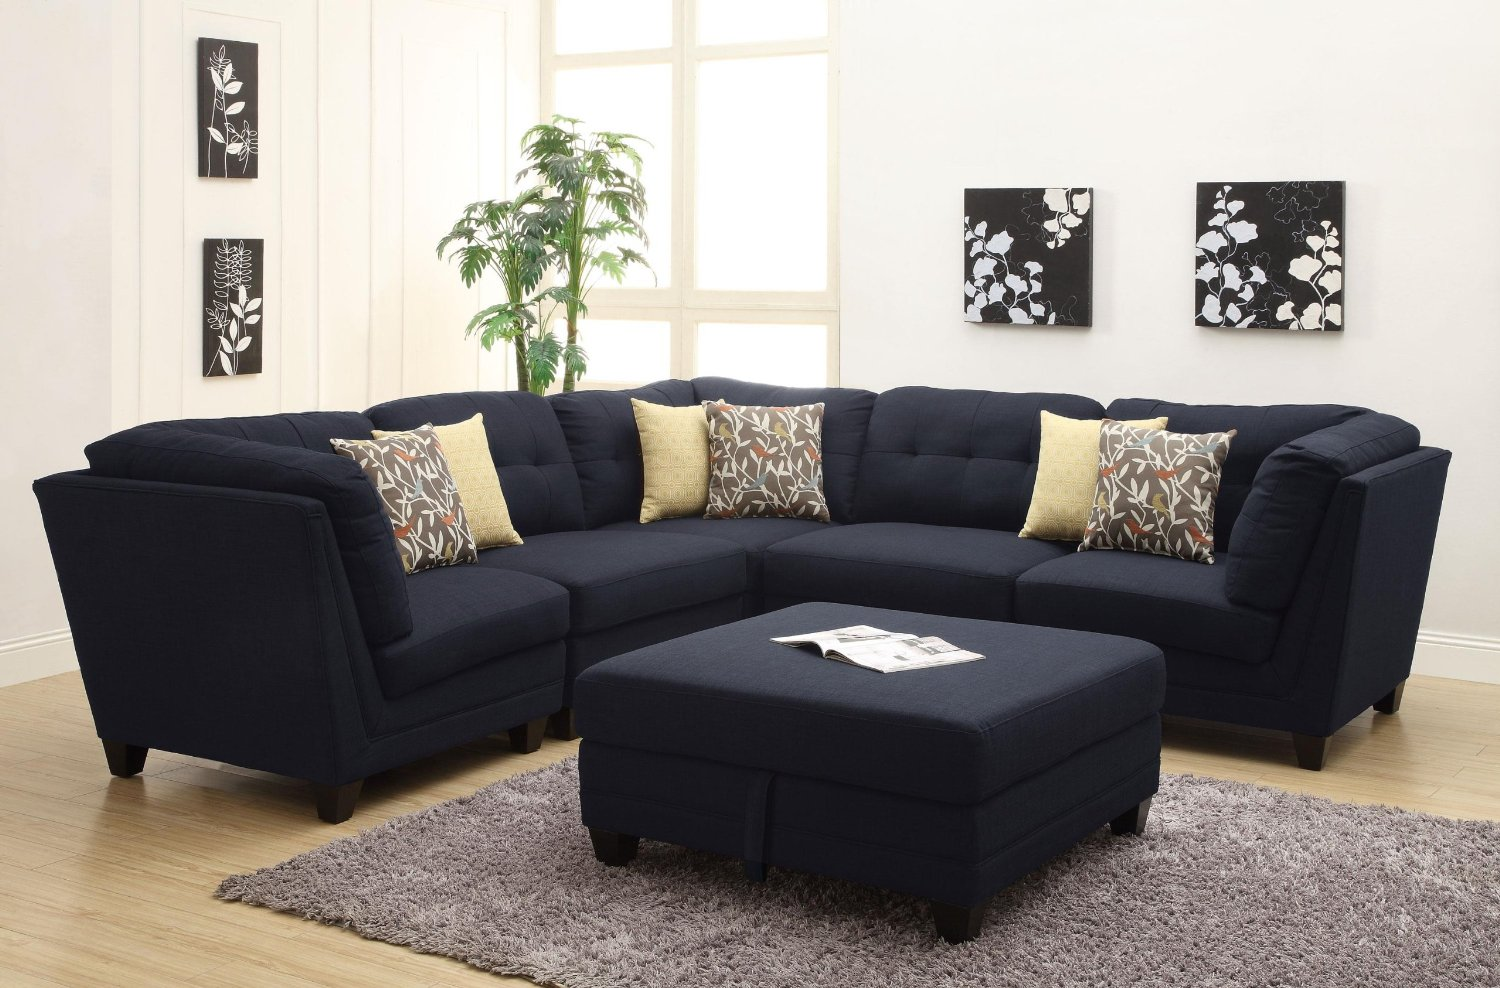 Most Comfortable Sectional Sofa for Fulfilling a Pleasant